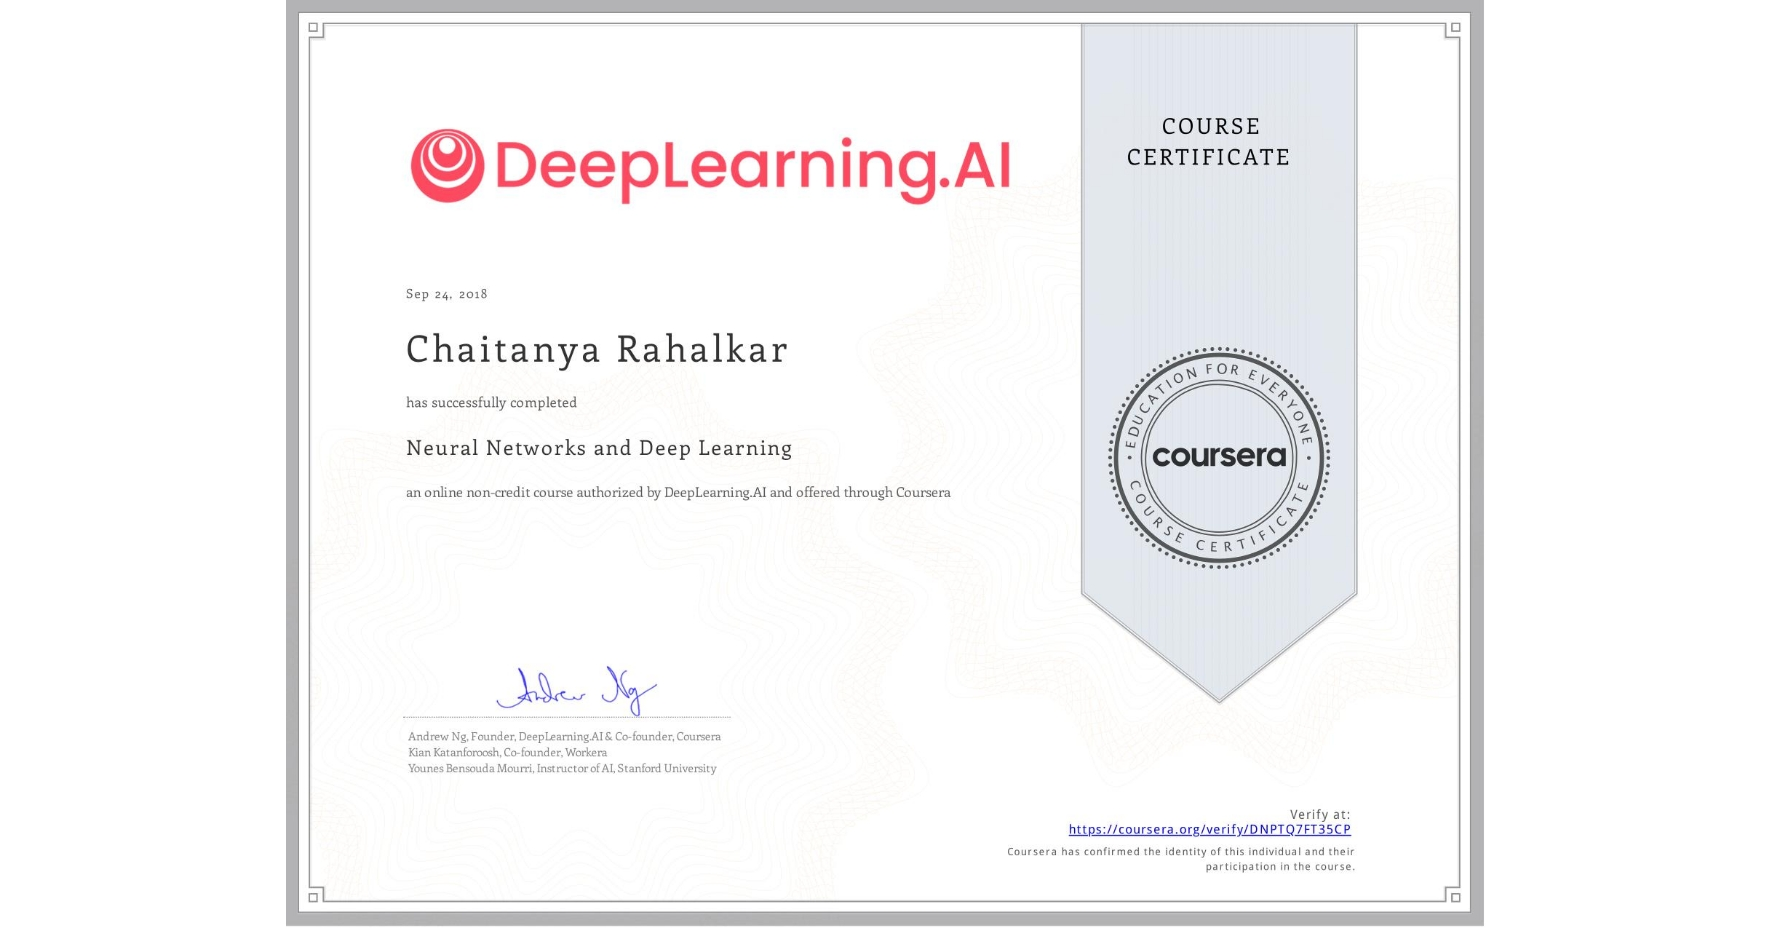 View certificate for Chaitanya Rahalkar, Neural Networks and Deep Learning, an online non-credit course authorized by DeepLearning.AI and offered through Coursera